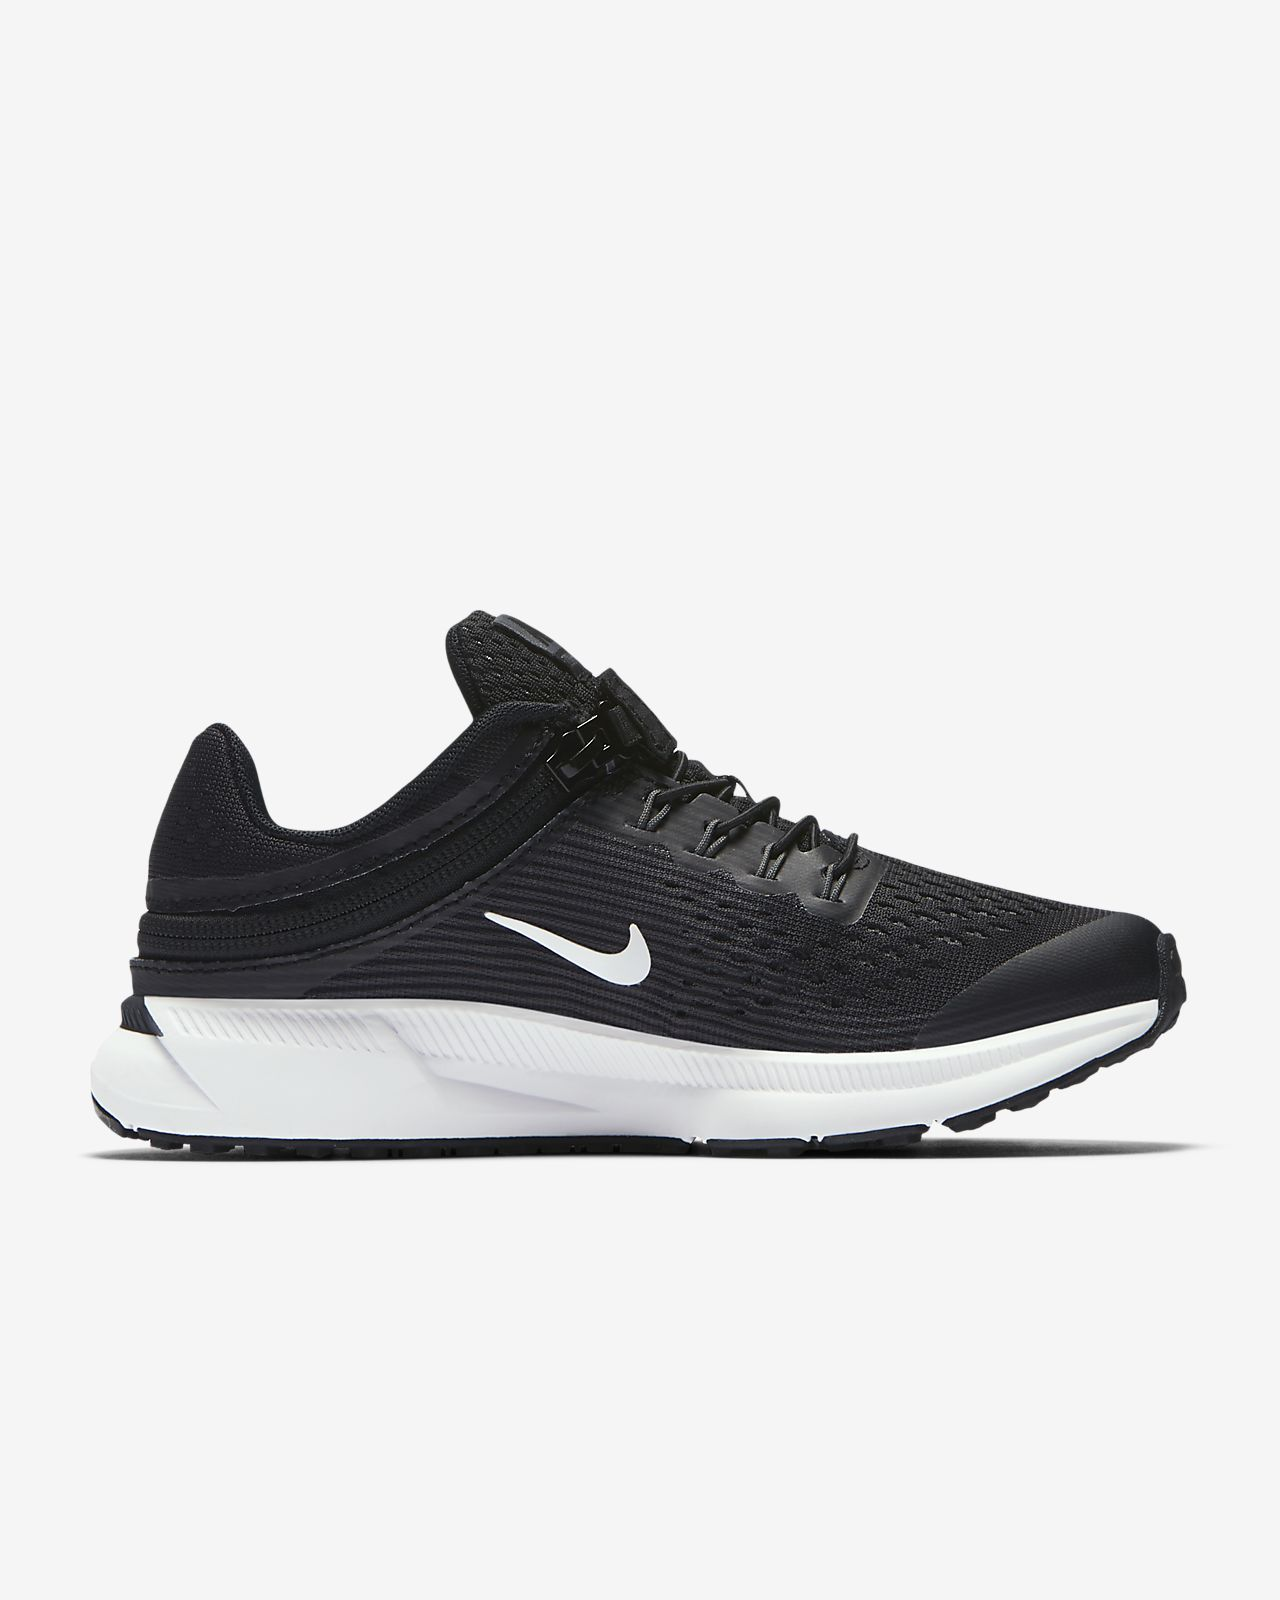 los angeles 1c5c0 3fdeb Nike Zoom Pegasus 34 FlyEase Little/Big Kids' Running Shoe